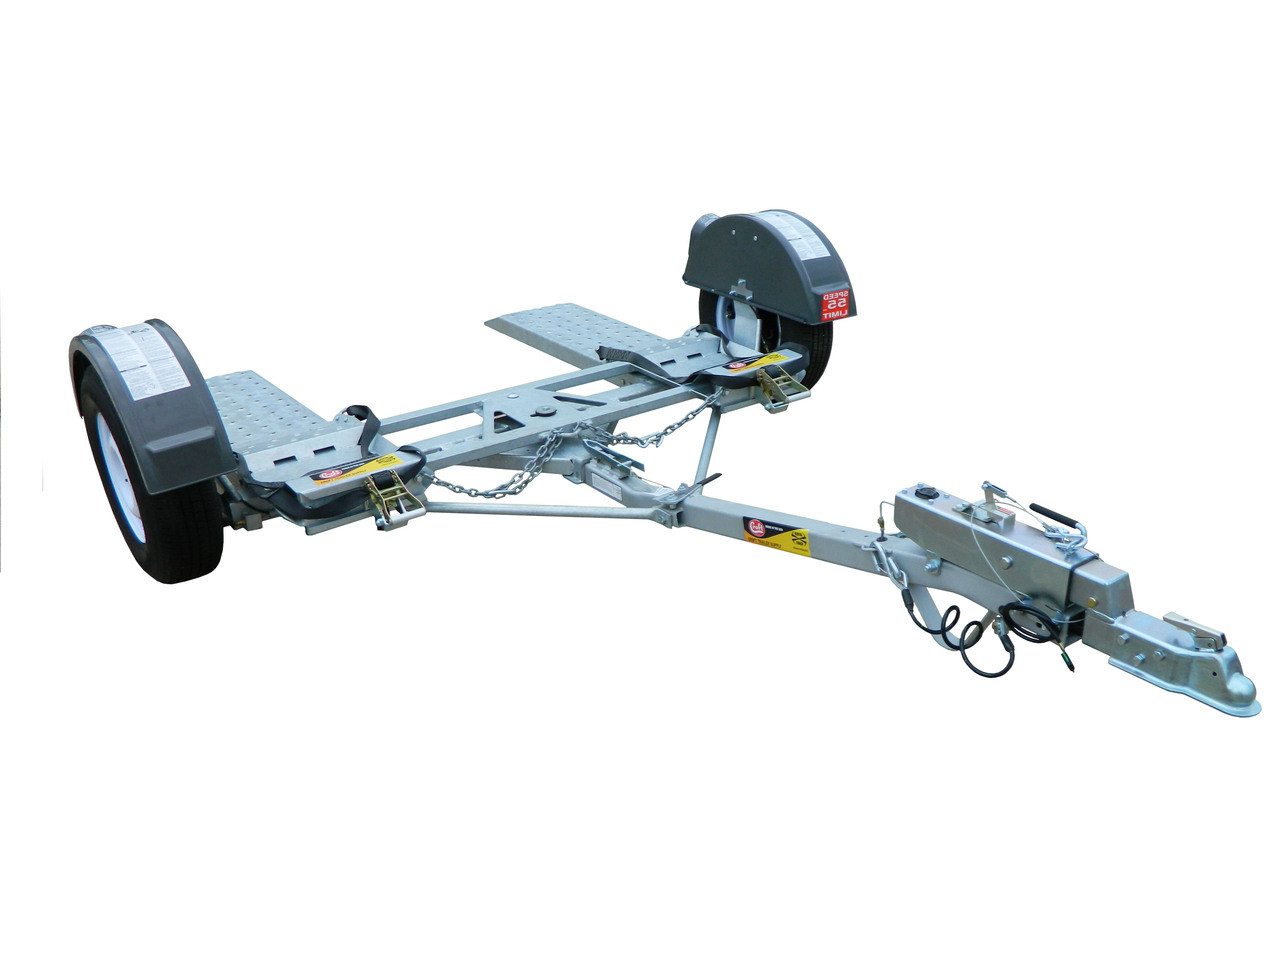 Cgtd76db Croft Torsion Axle Tow Dolly With Surge Disc Brakes